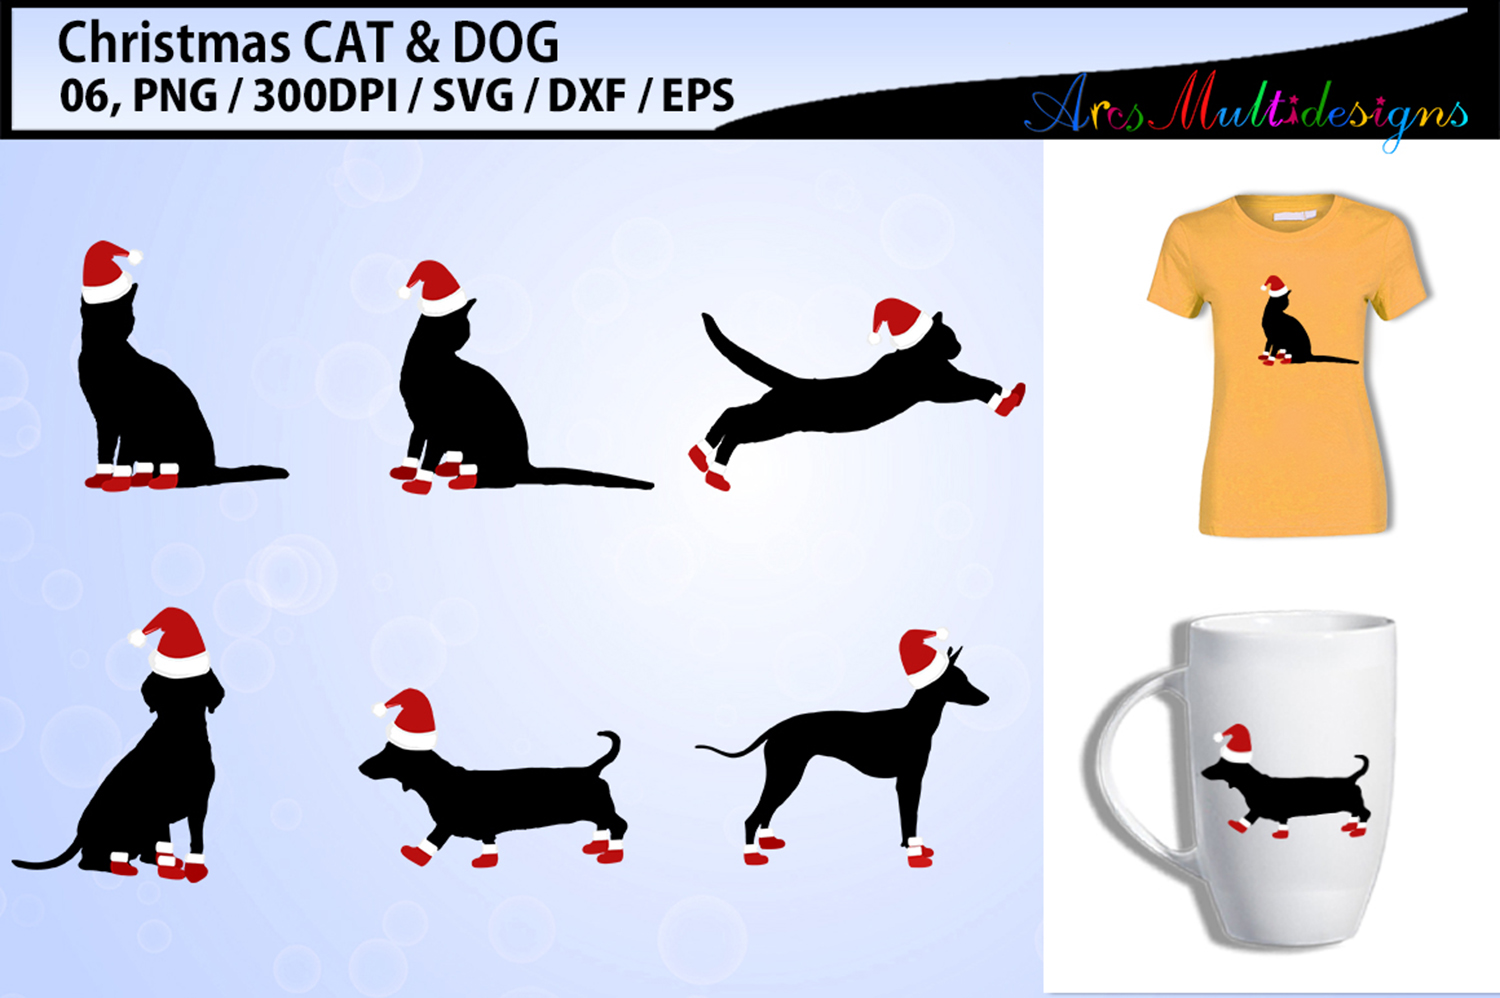 Download Free Christmas Cat Vector Svg Vector Graphic By Arcs Multidesigns Creative Fabrica for Cricut Explore, Silhouette and other cutting machines.